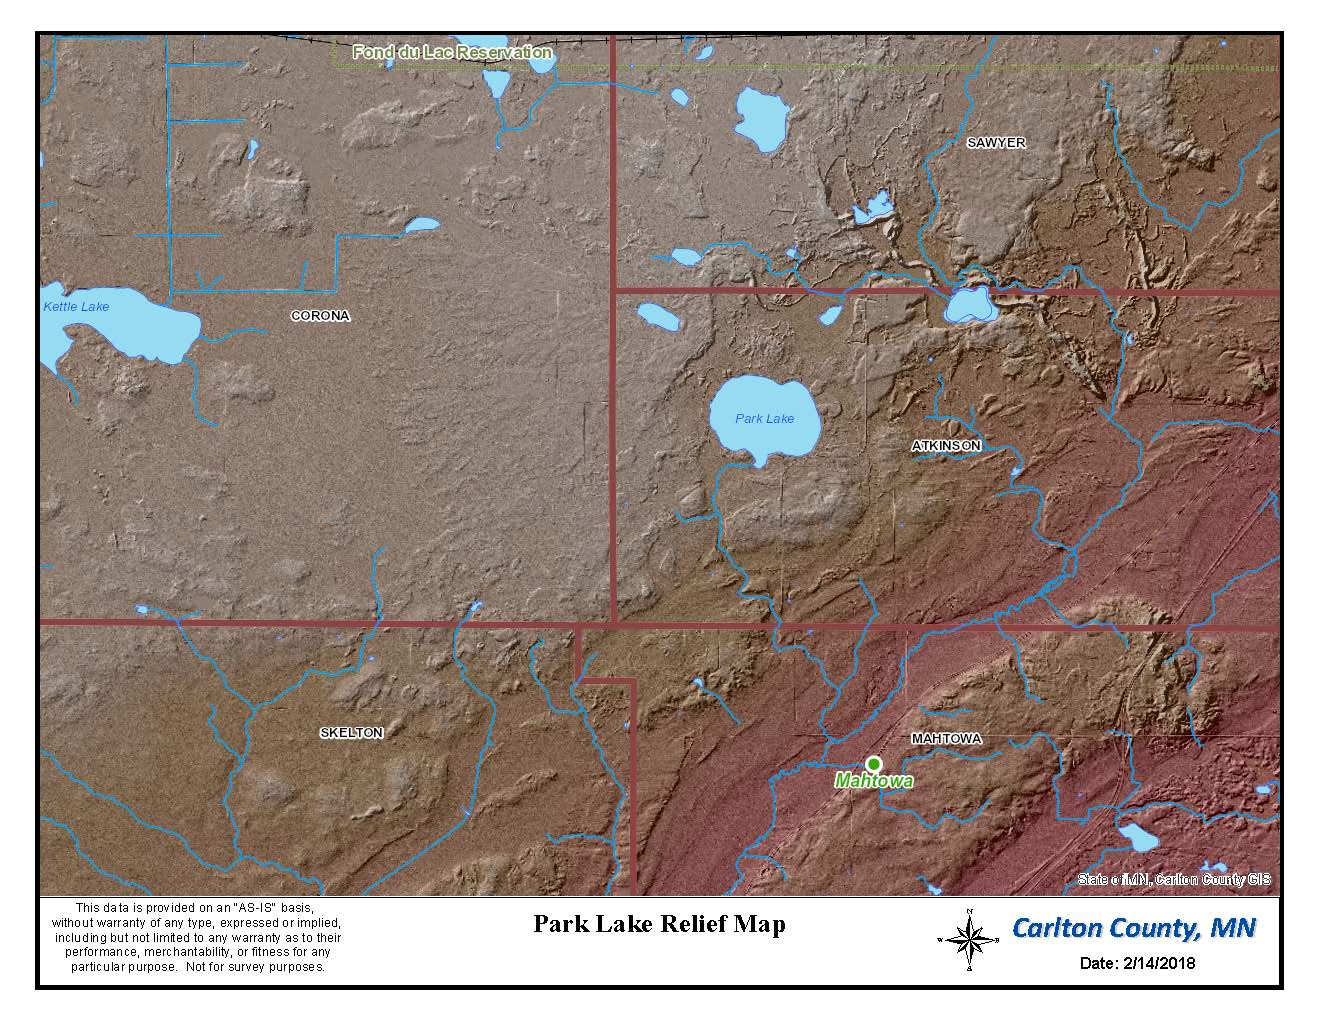 21 Park Lake Relief Map.jpg